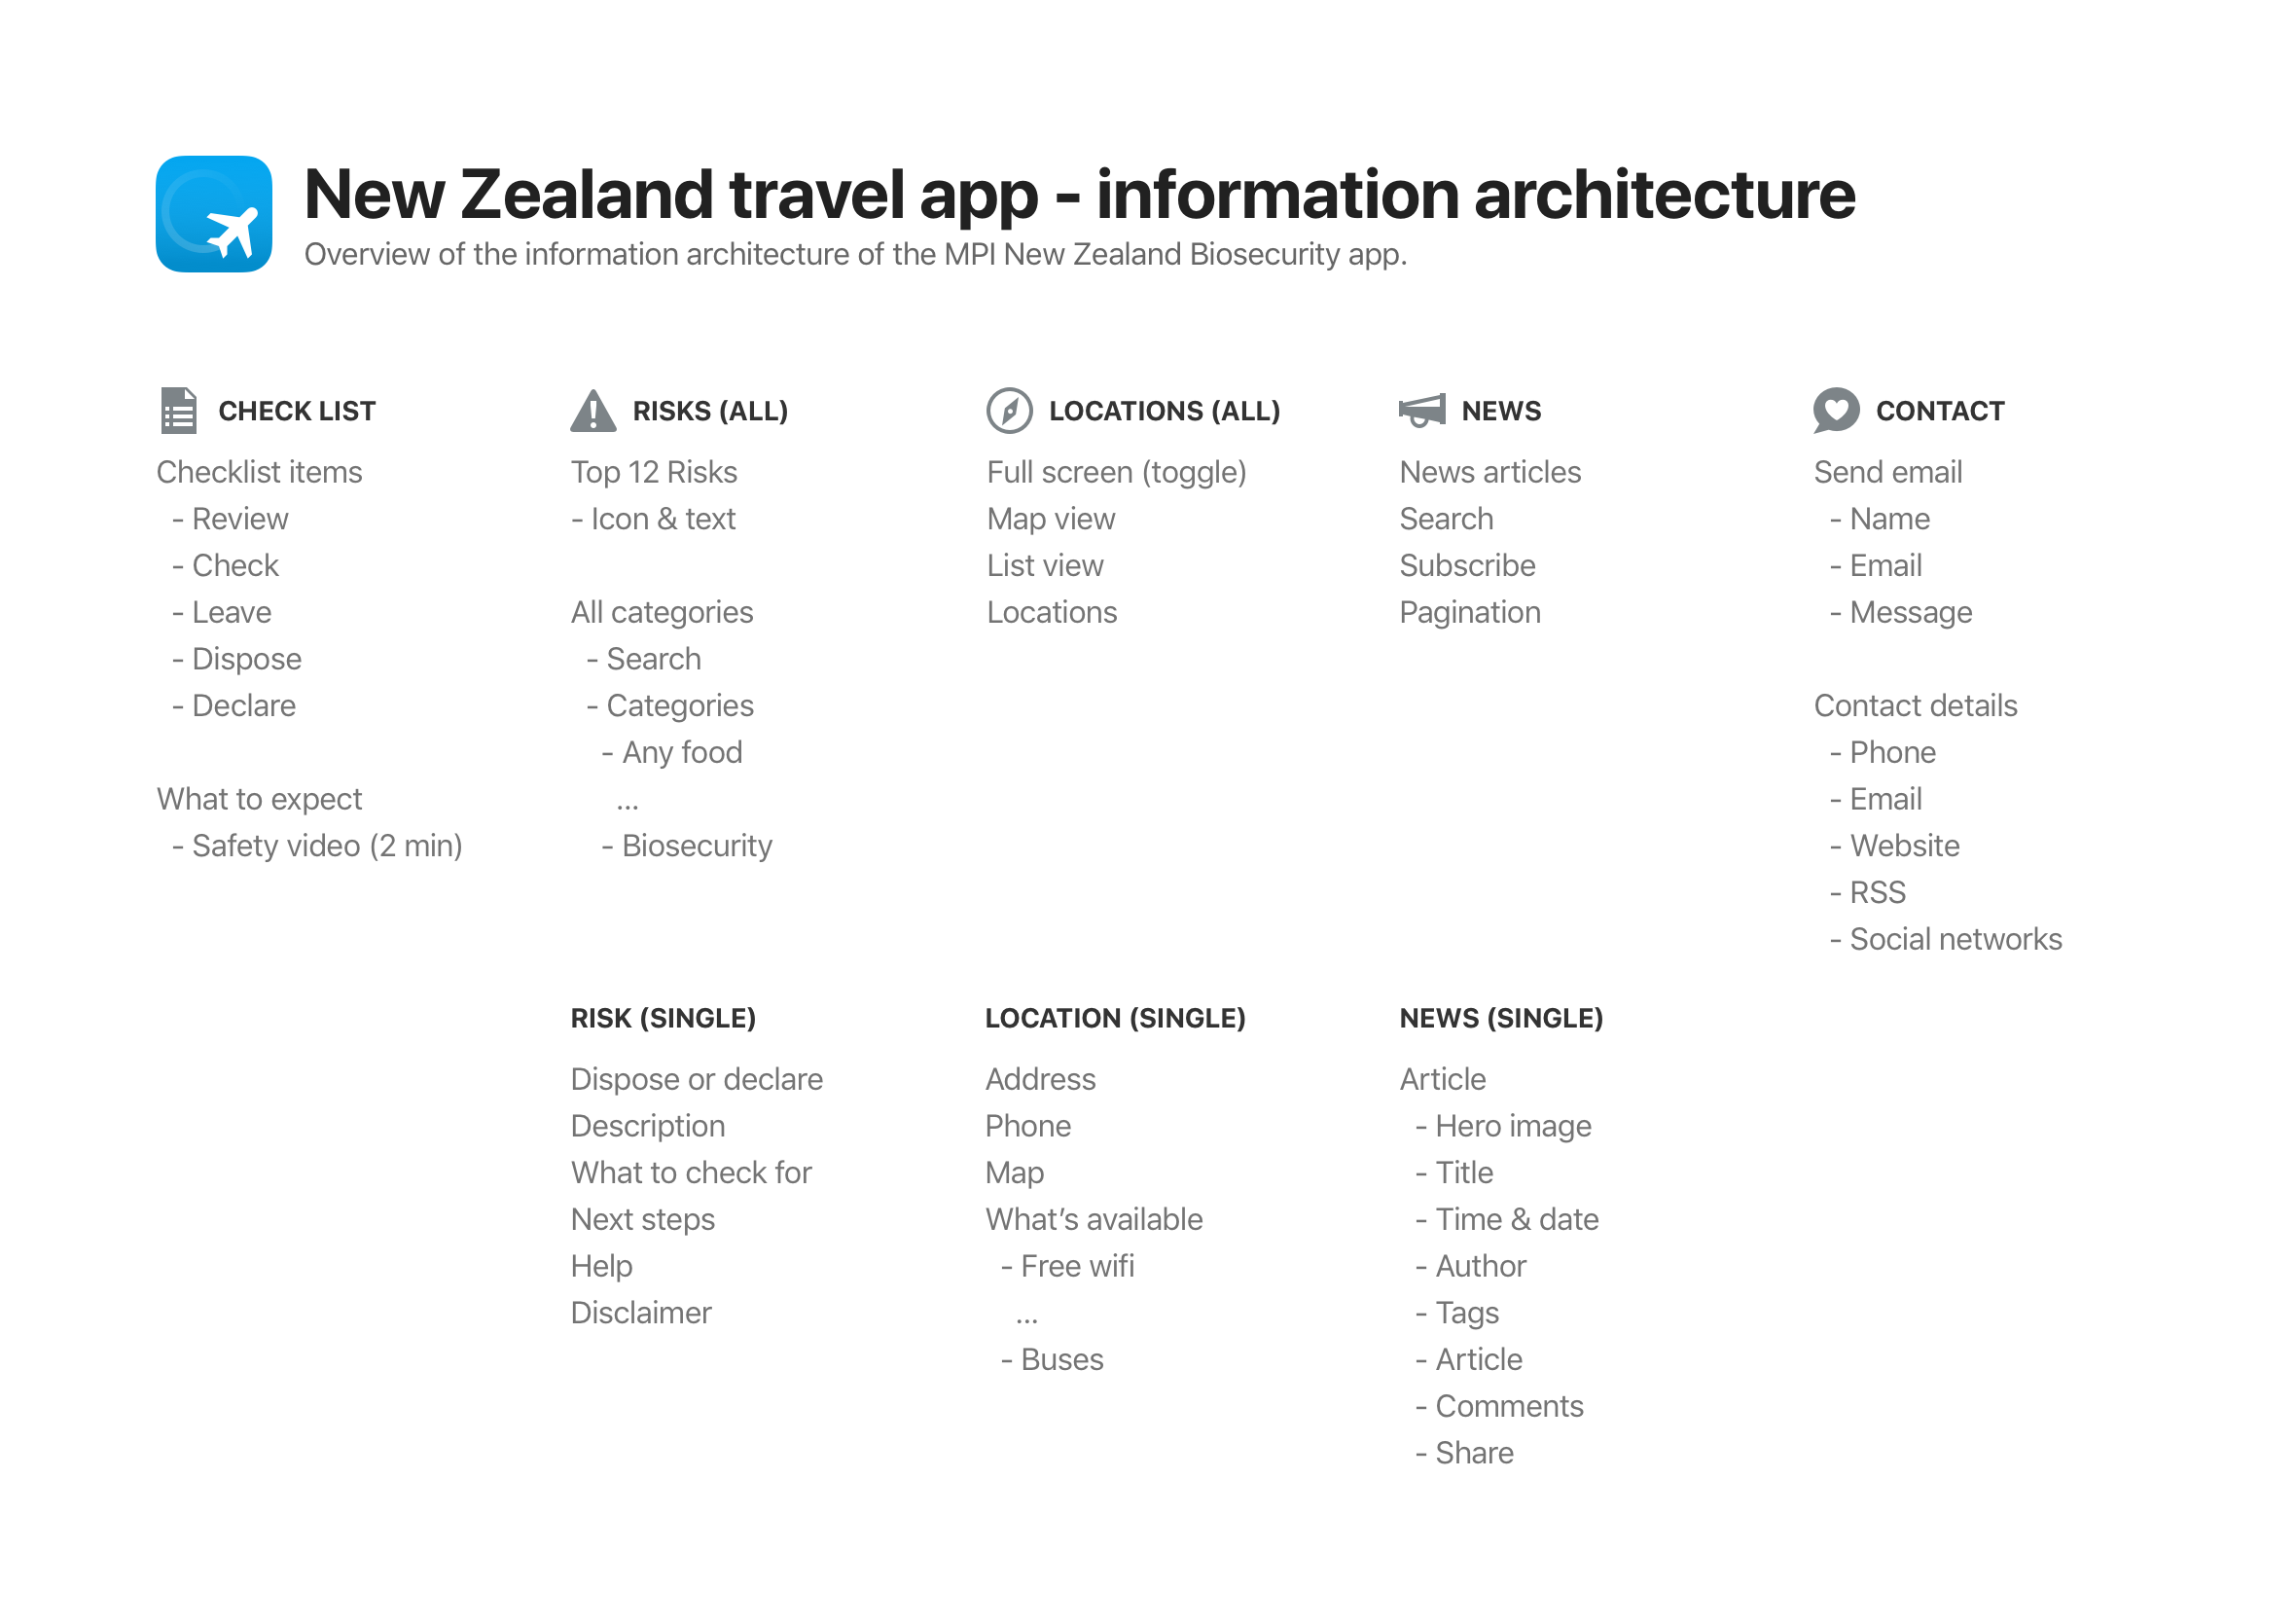 coming-to-new-zealand-information-architecture